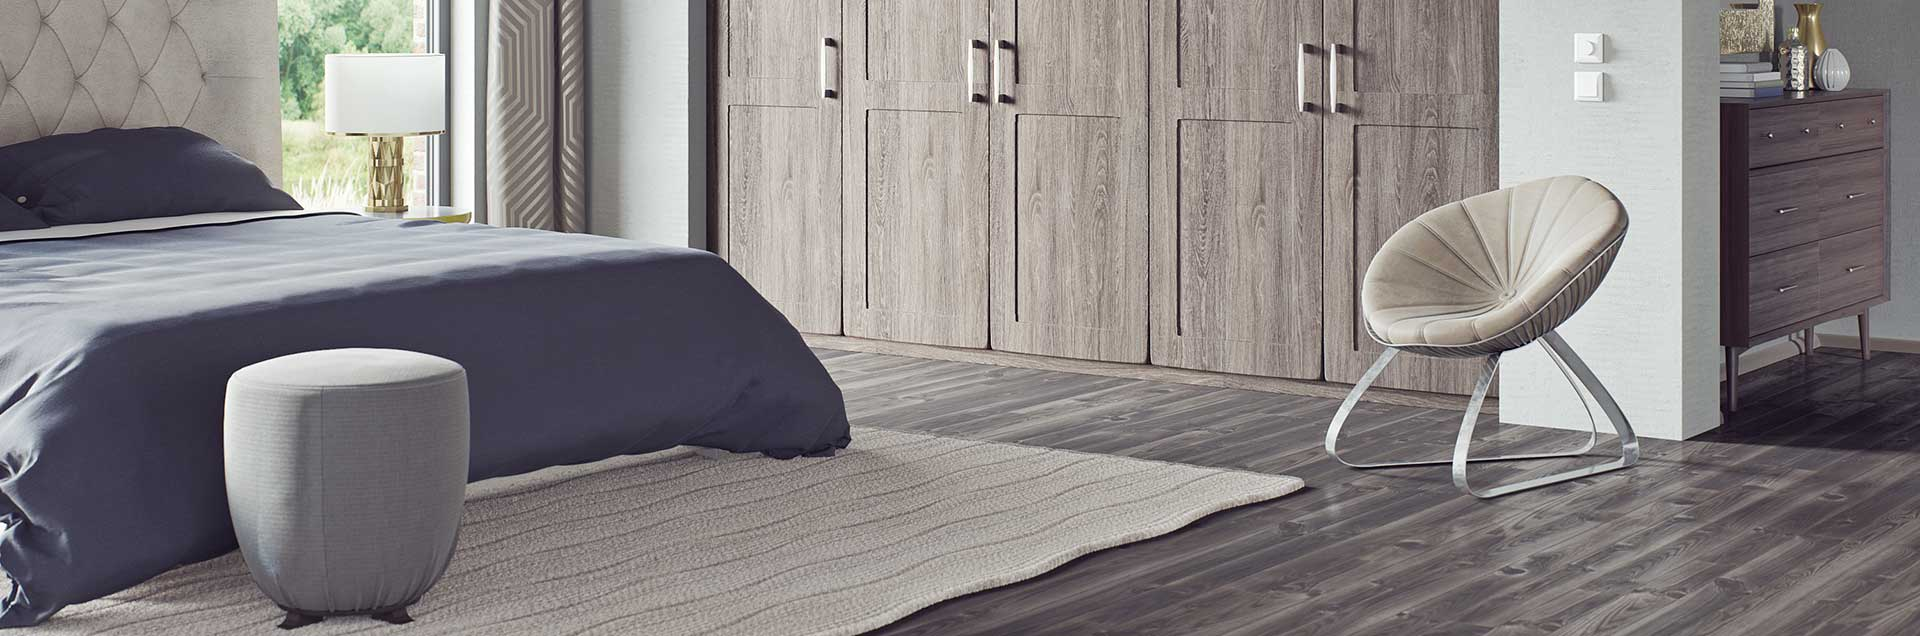 Aspire Bedroom Range Header